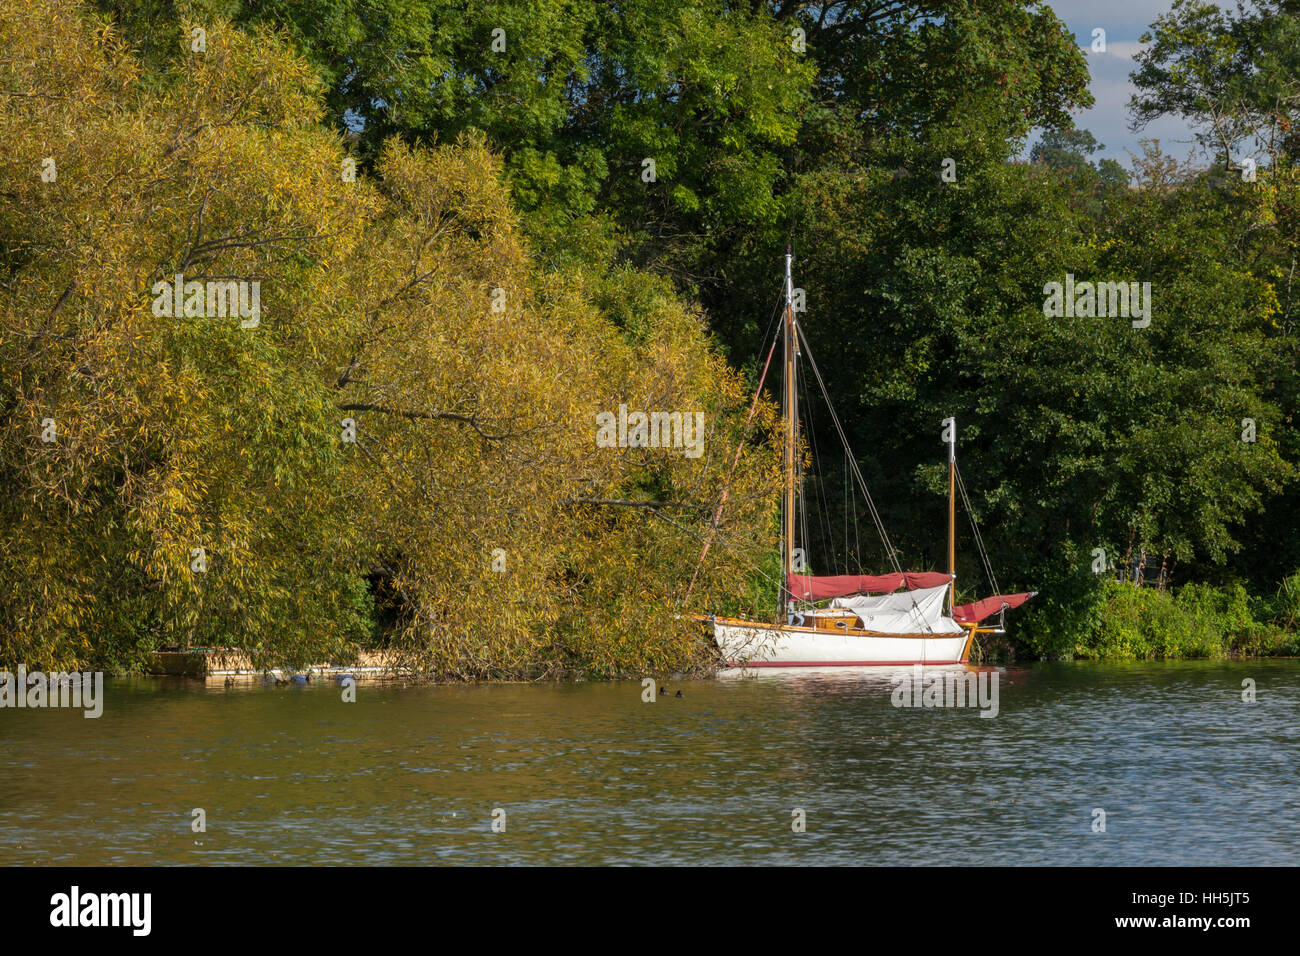 A sailboat moored on the River Thames near Hambleden Lock, in early autumn, Chilterns, Buckinghamshire, England - Stock Image